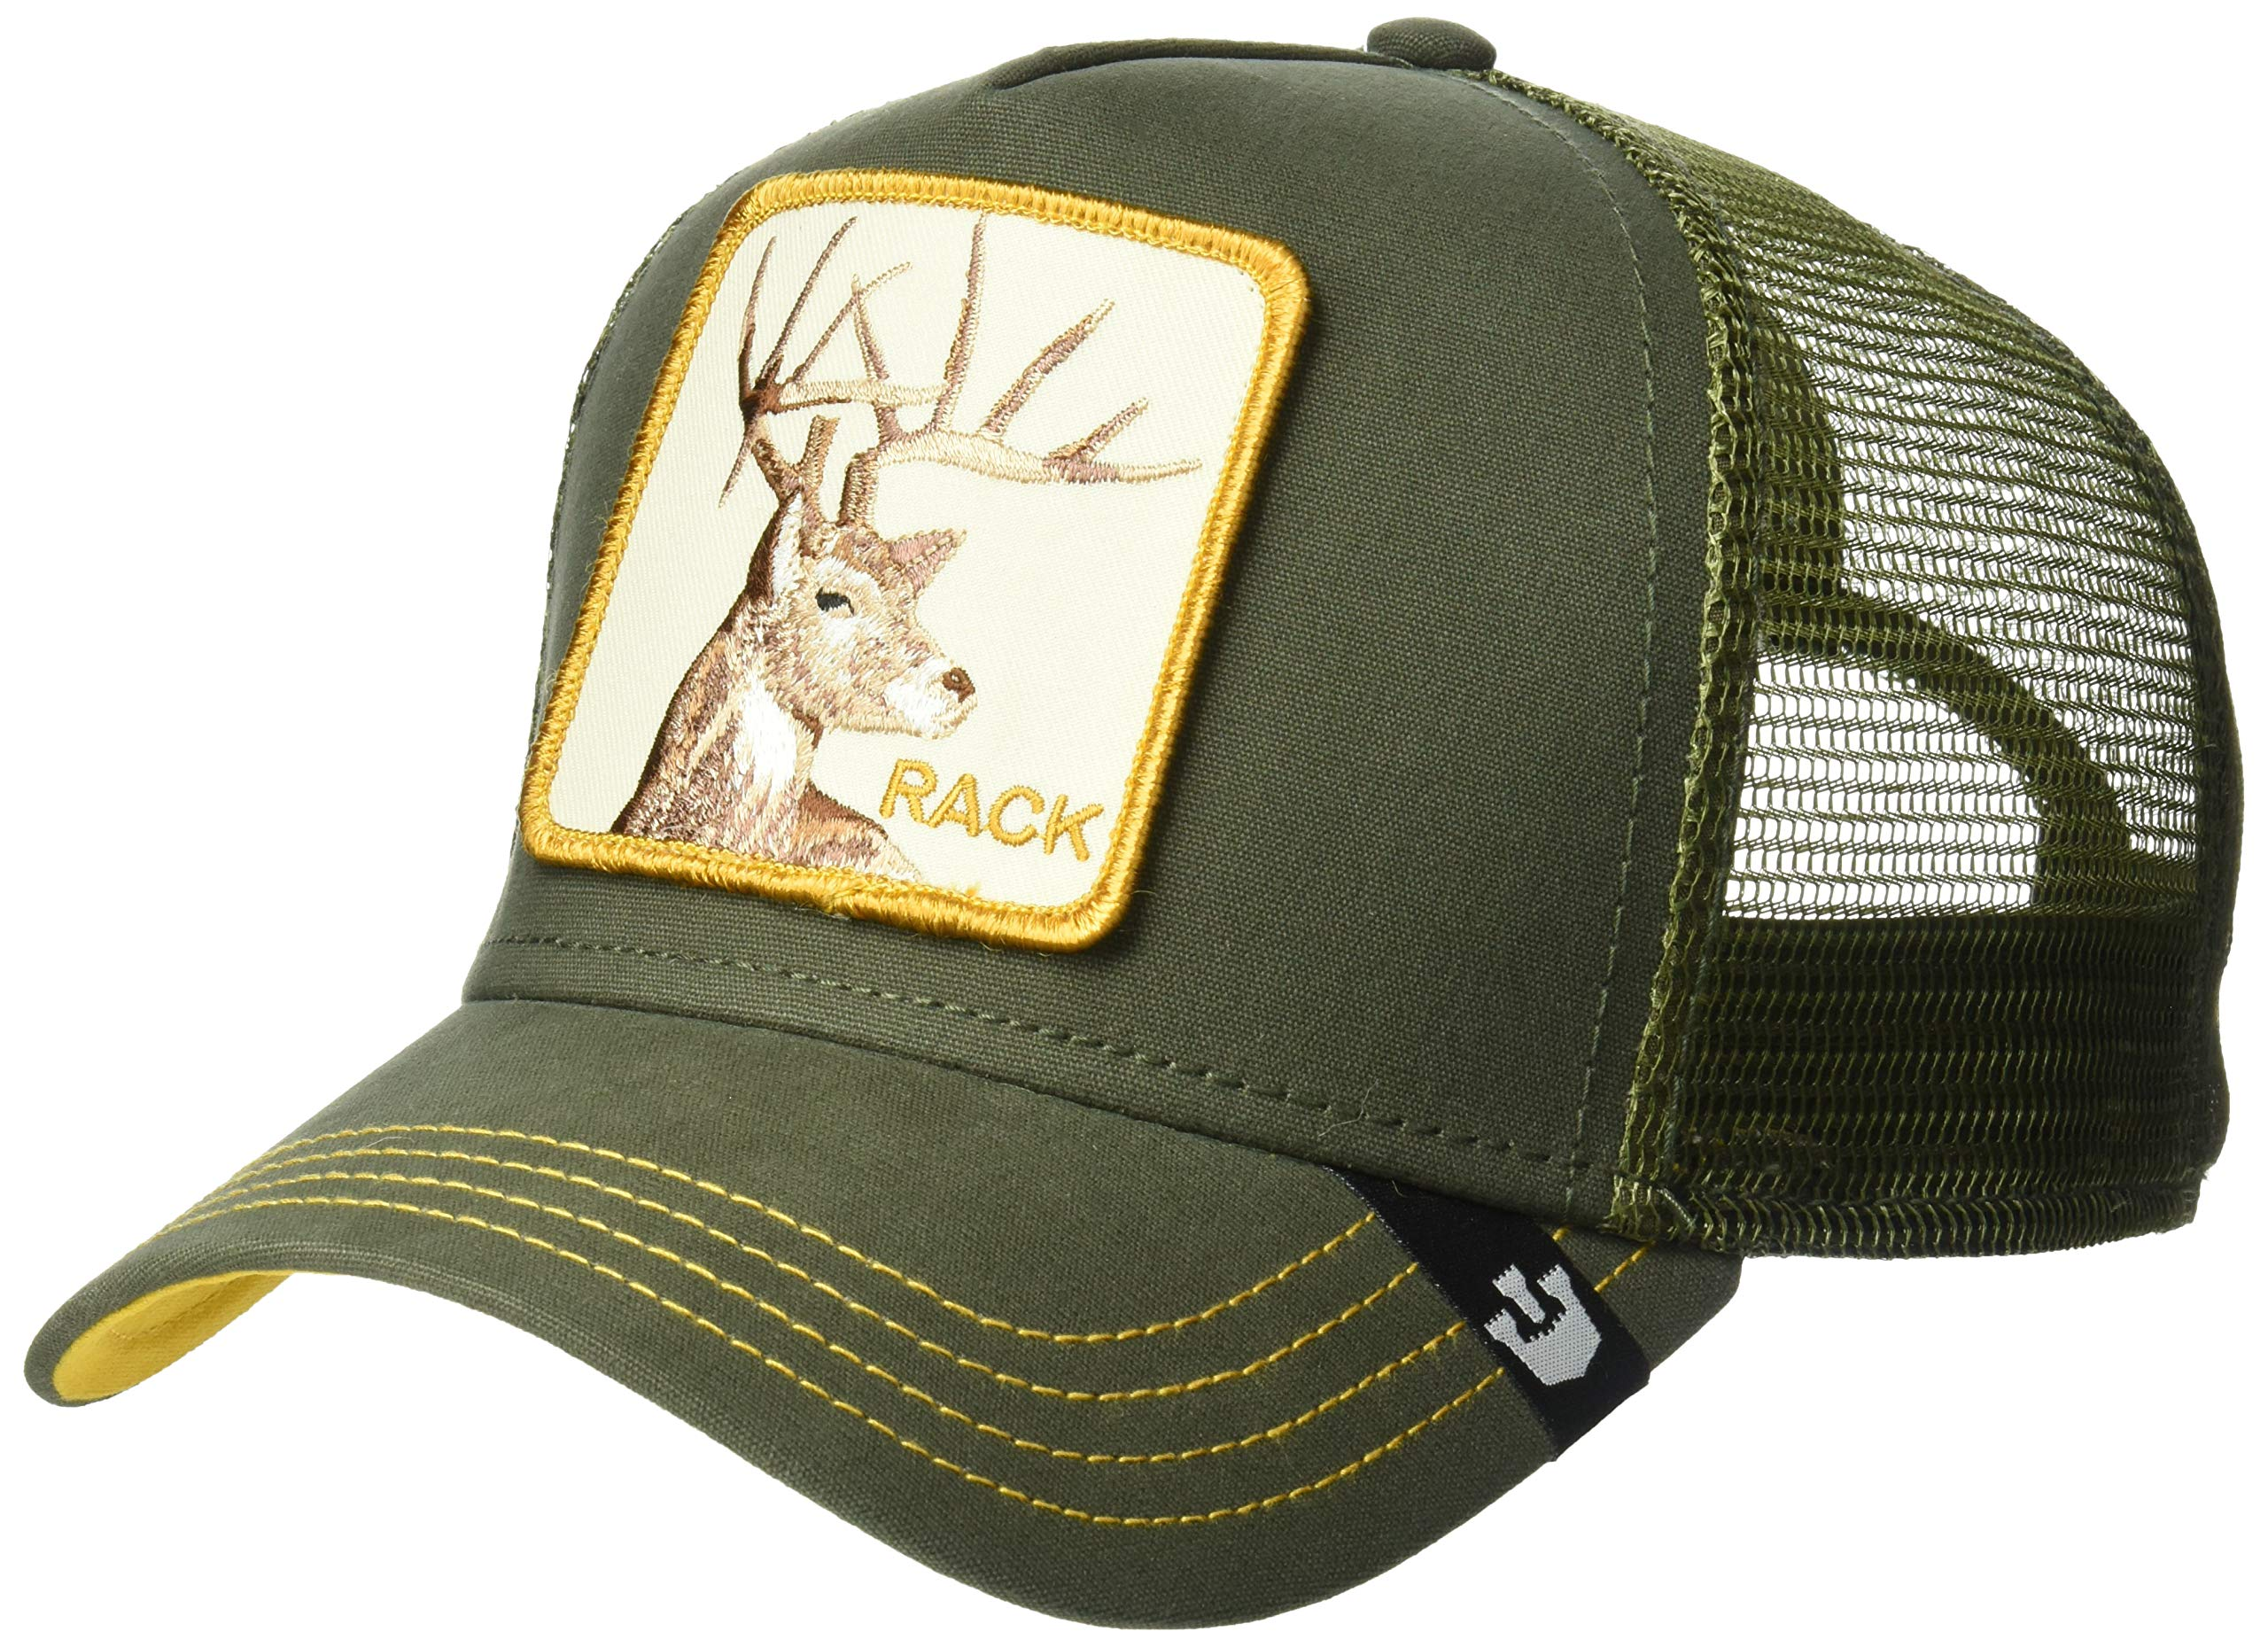 1d6a3e88 Galleon - Goorin Bros. Men's Animal Farm Trucker Hat, Green Deer, One Size